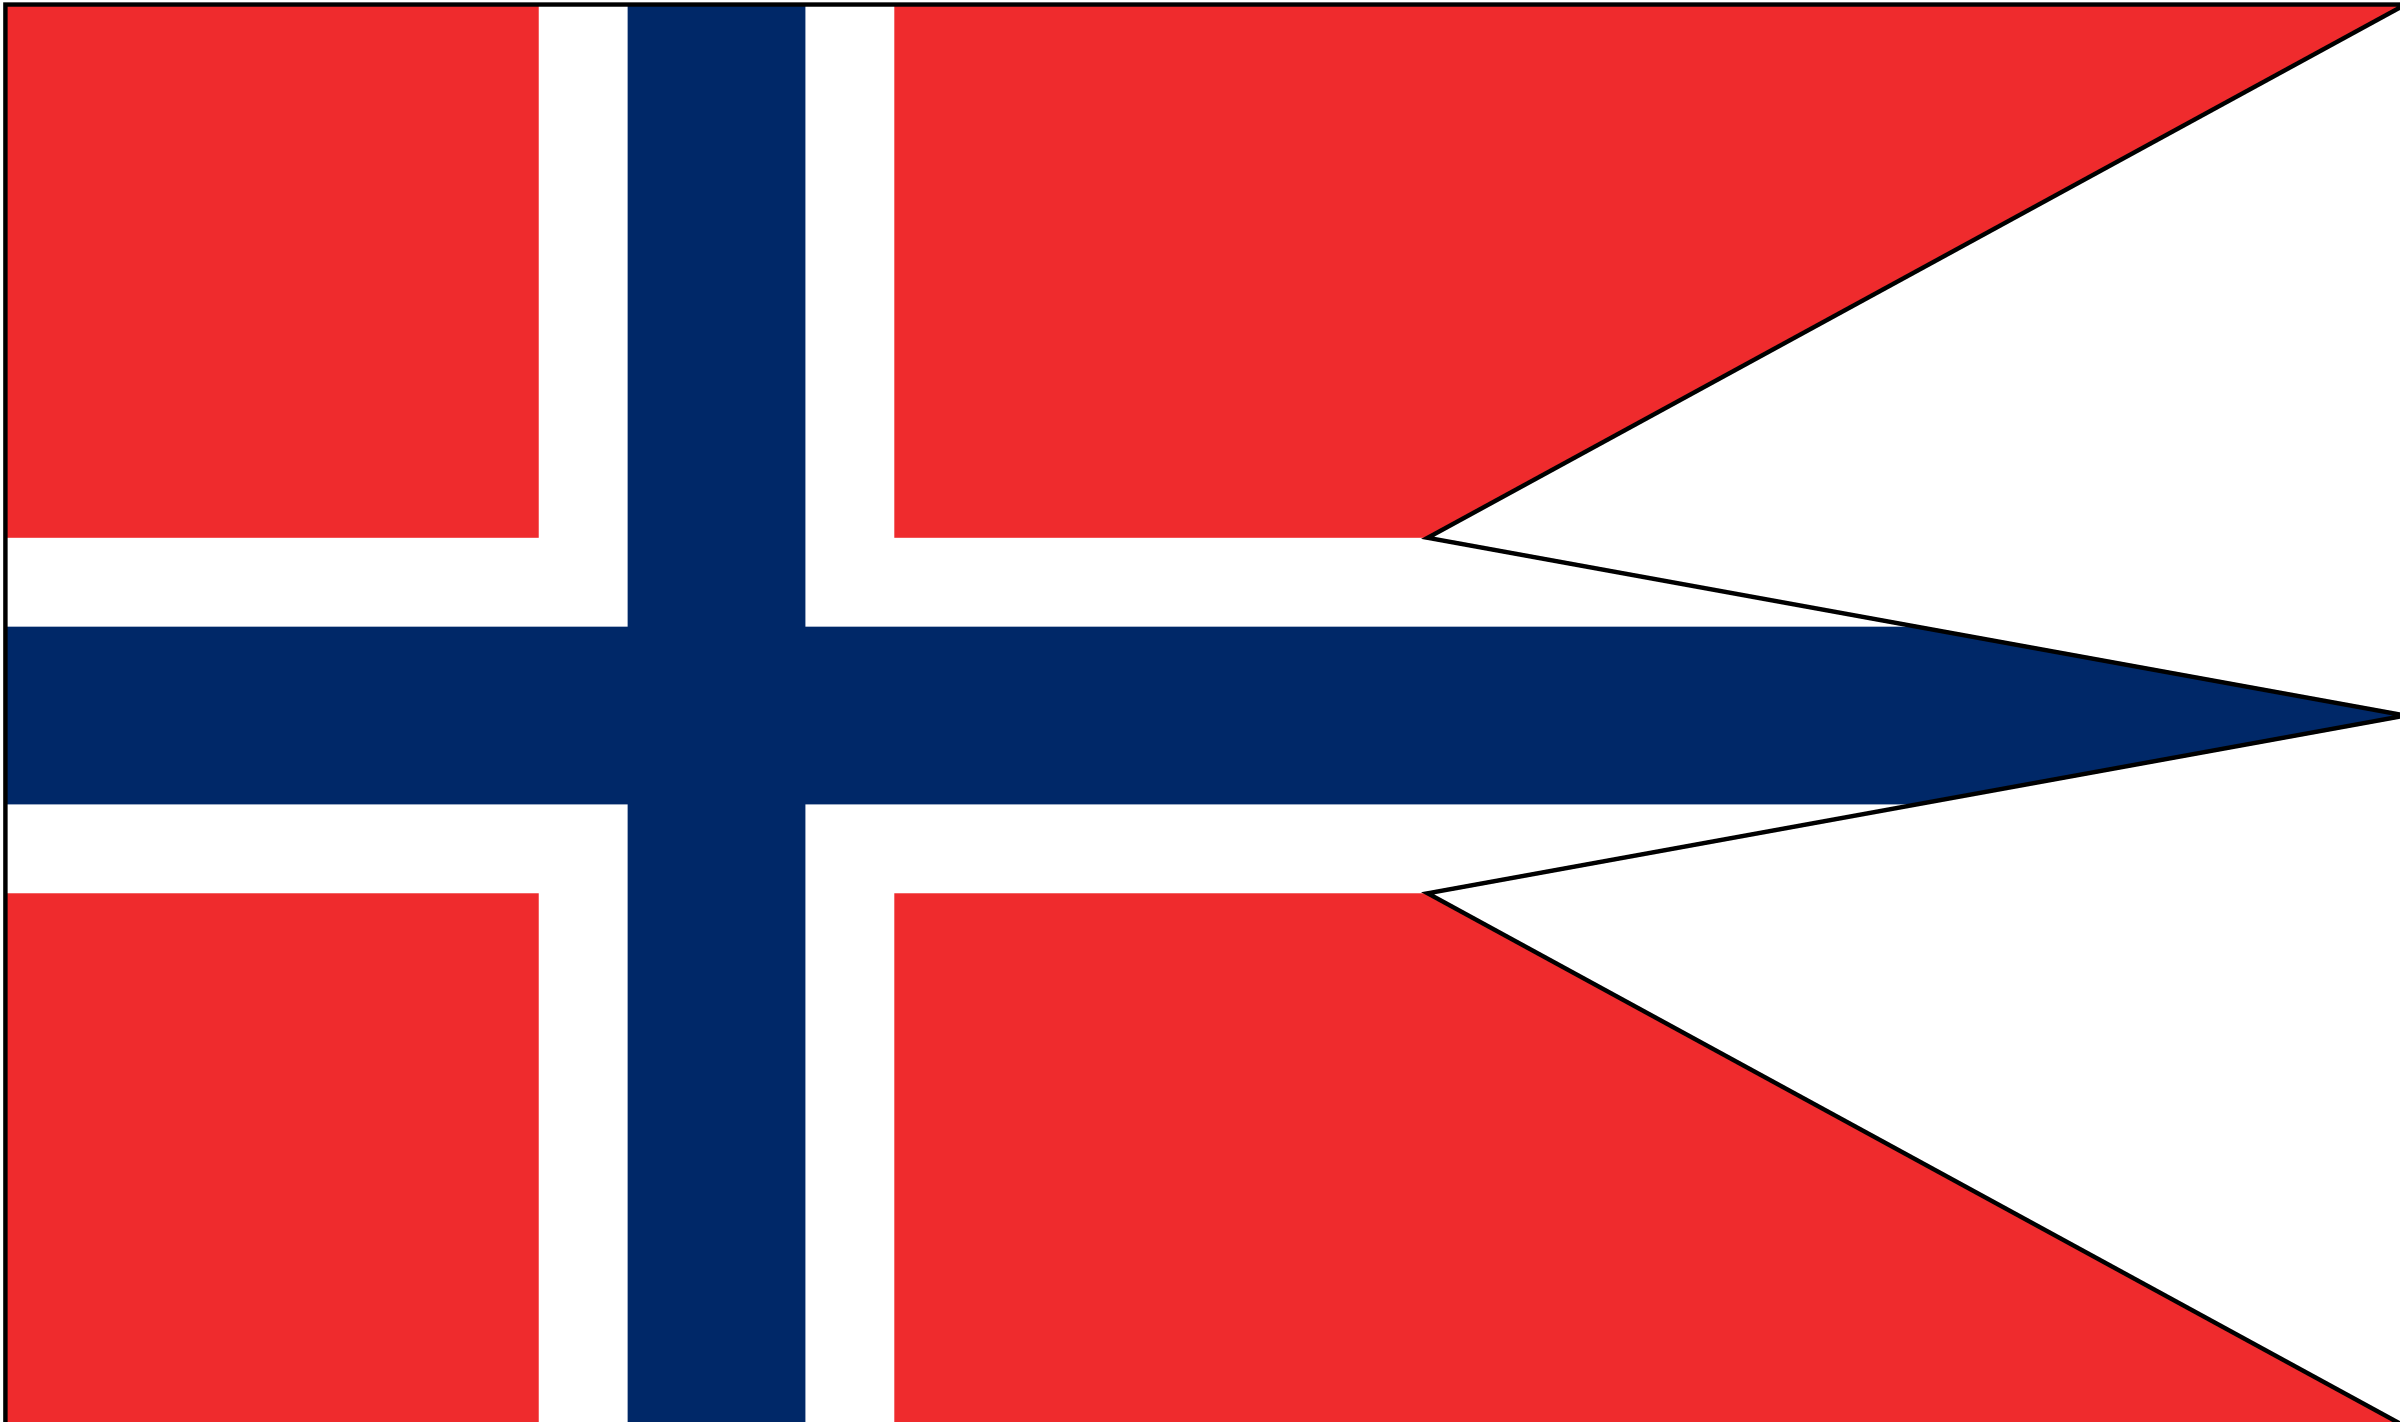 Norwegian state and war flag by Anonymous